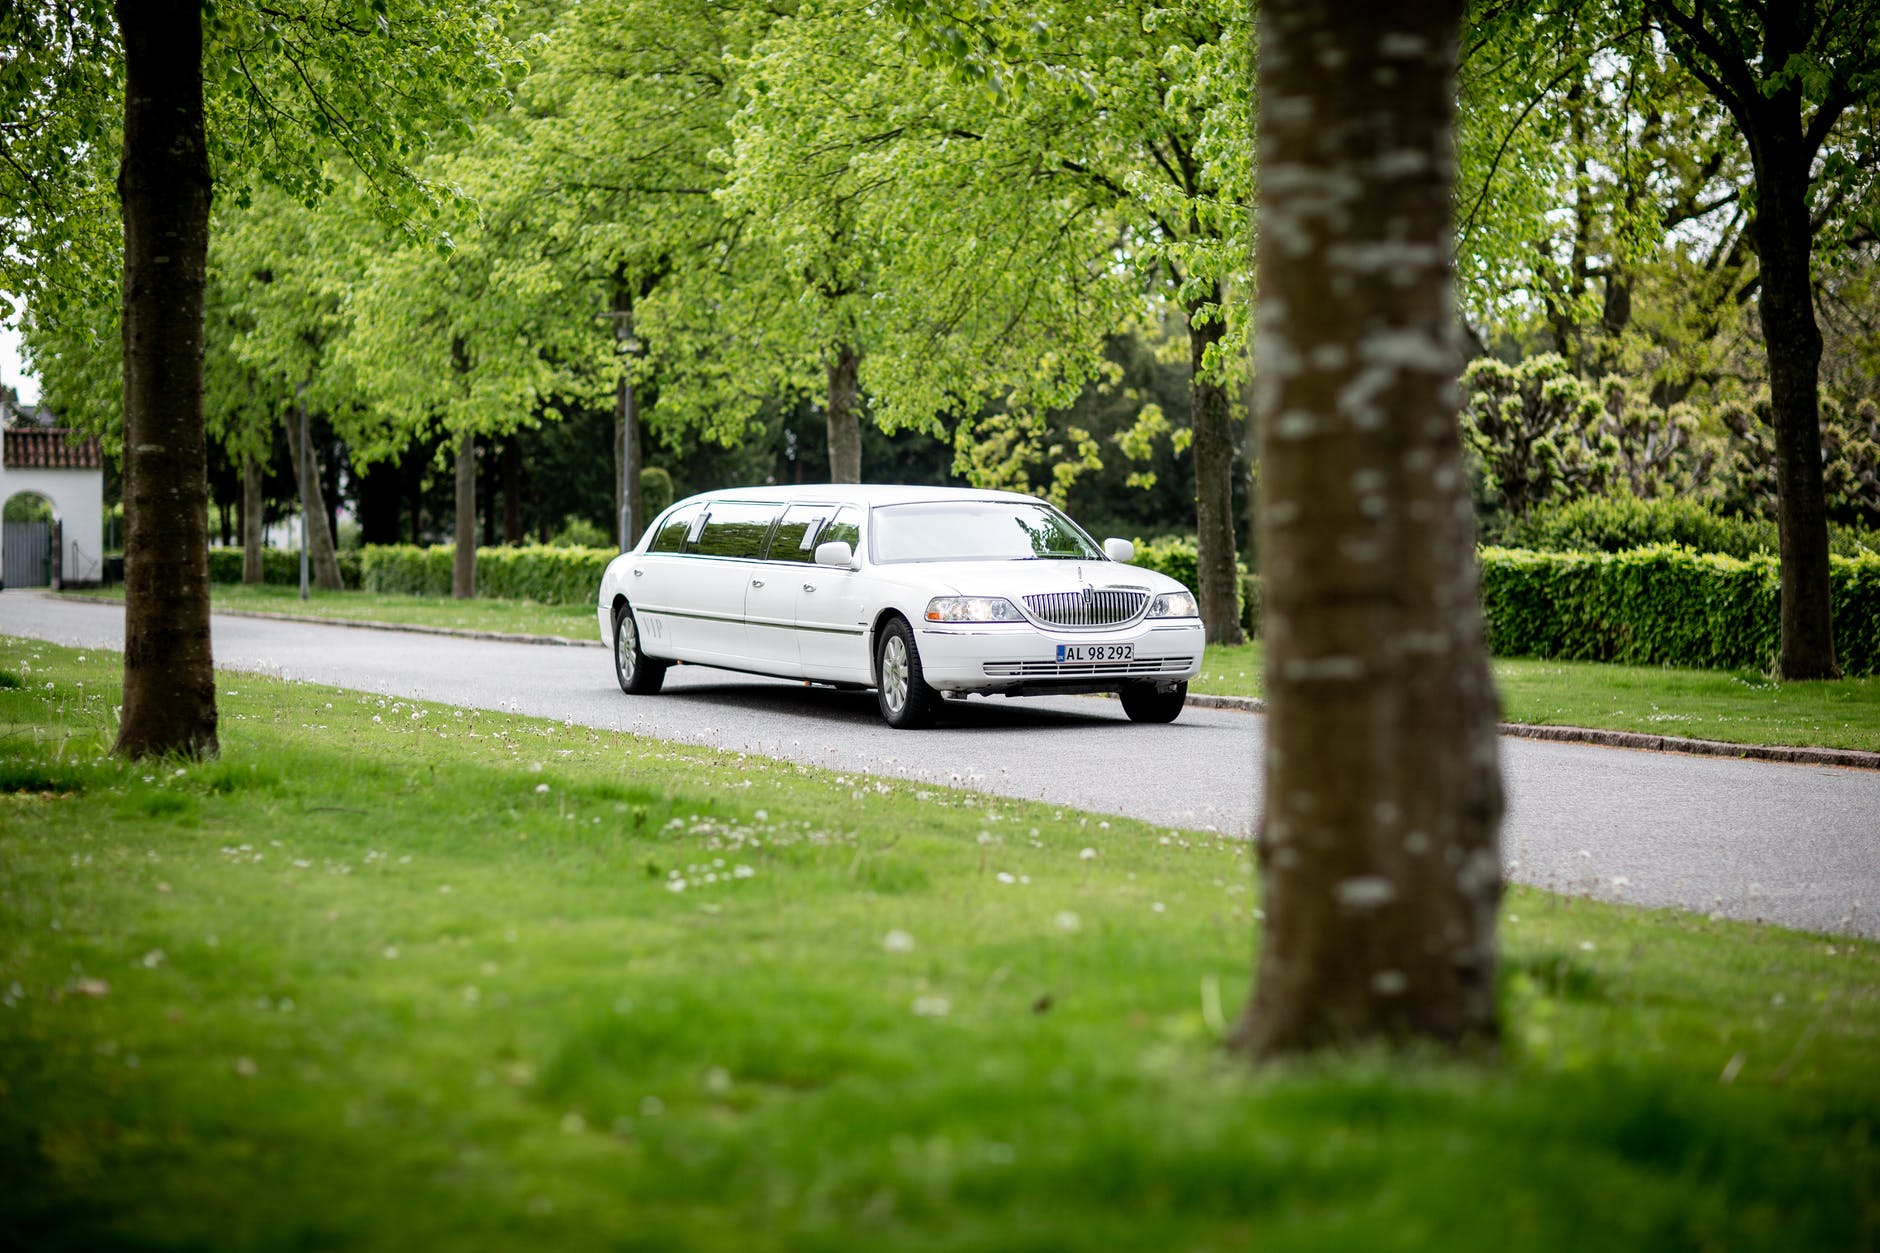 6 Common Mistakes To Avoid While Hiring A Limo